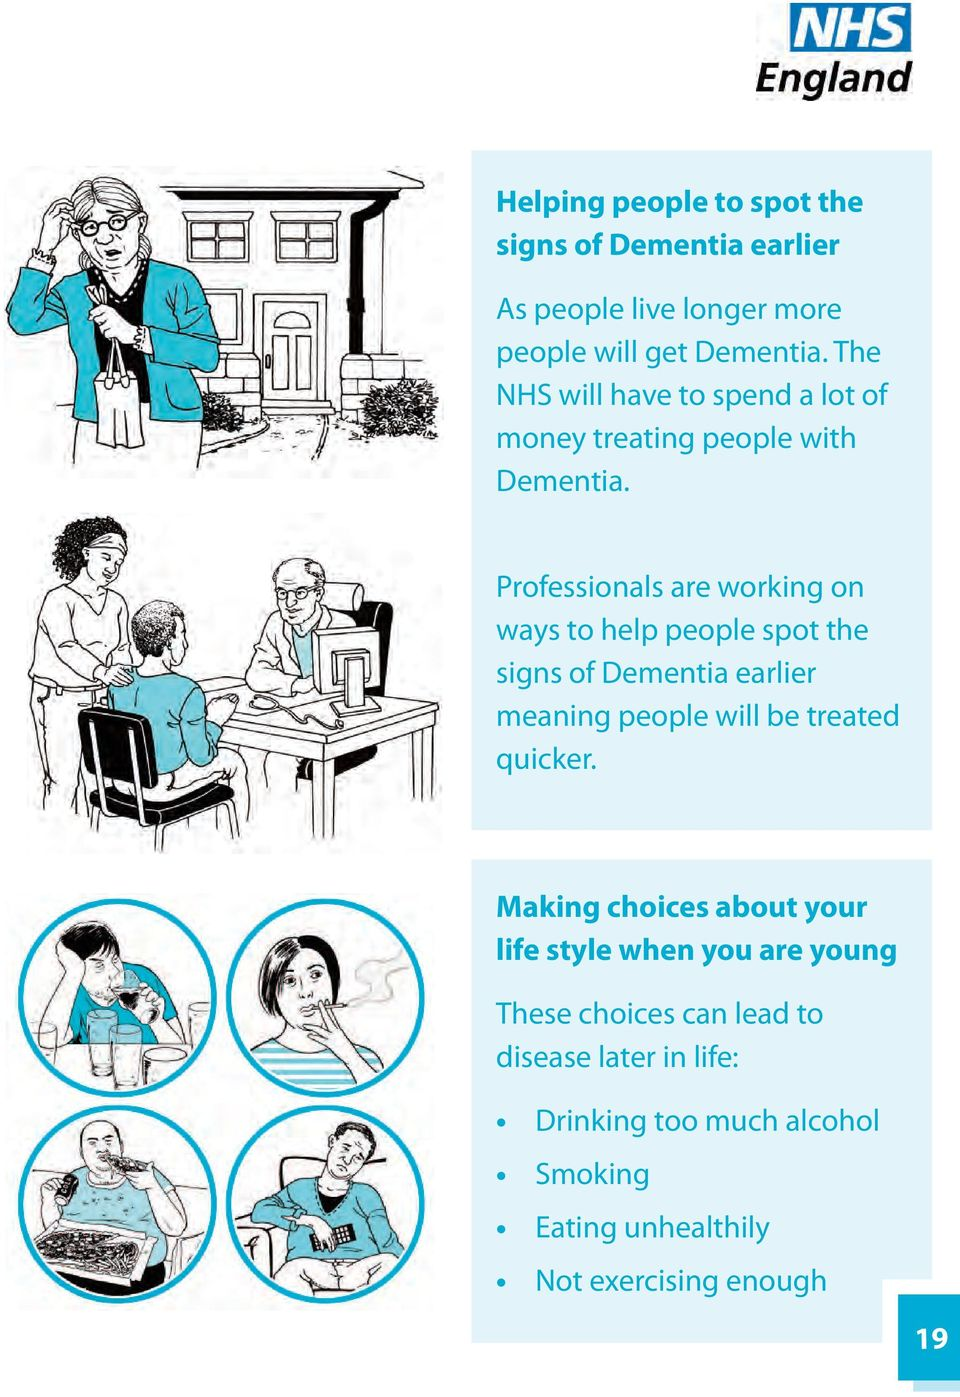 Professionals are working on ways to help people spot the signs of Dementia earlier meaning people will be treated